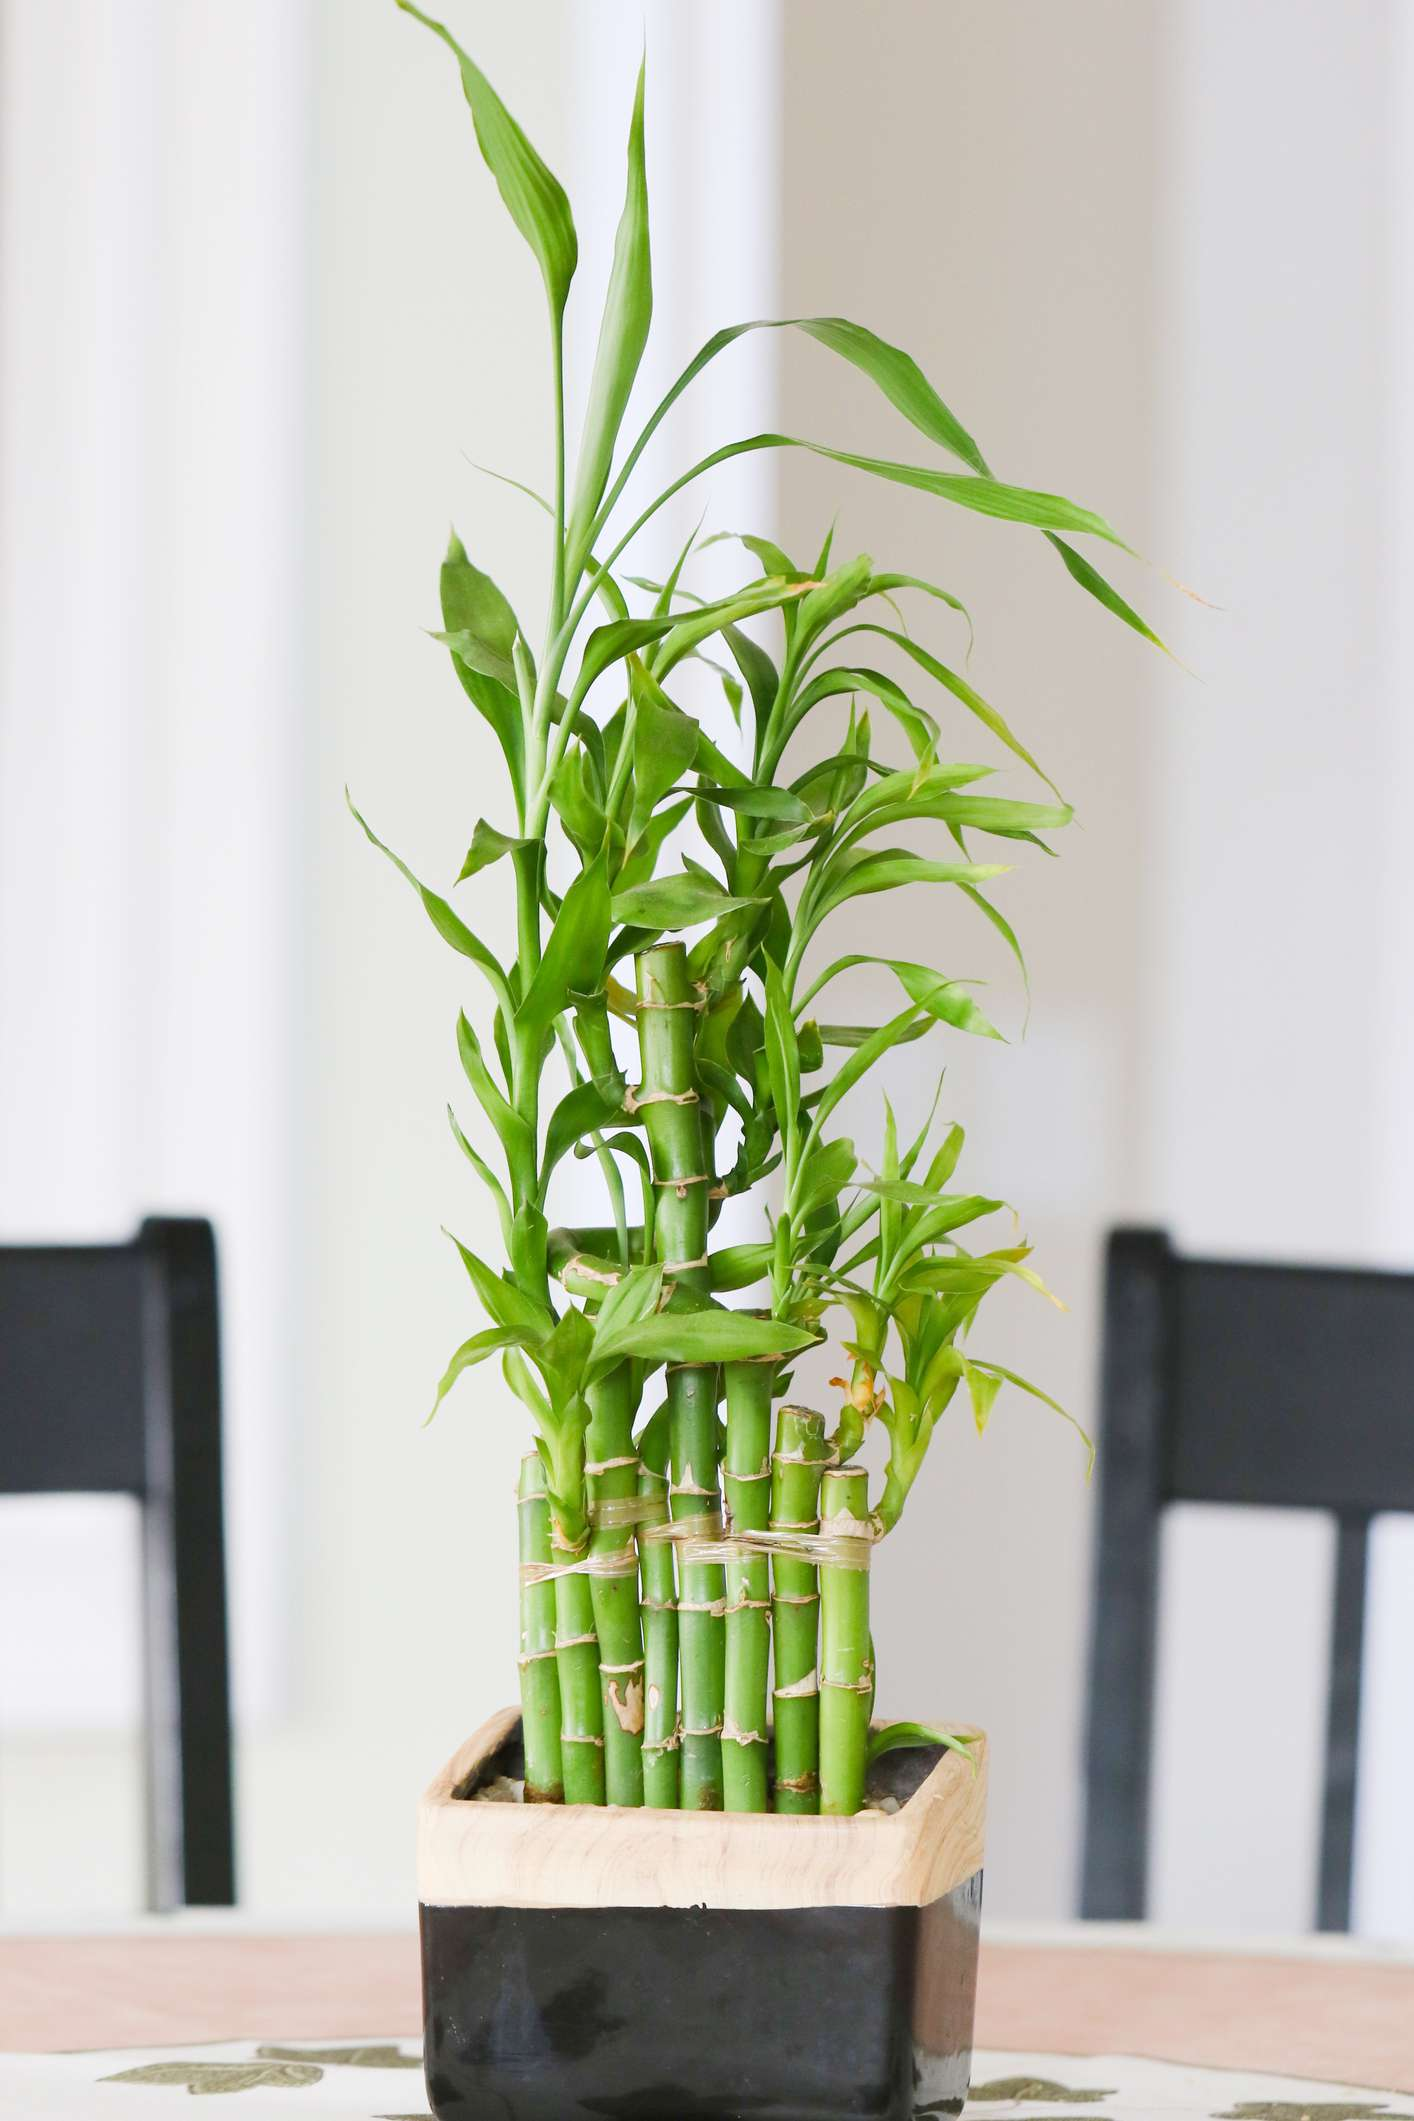 Bamboo plant on a dining table